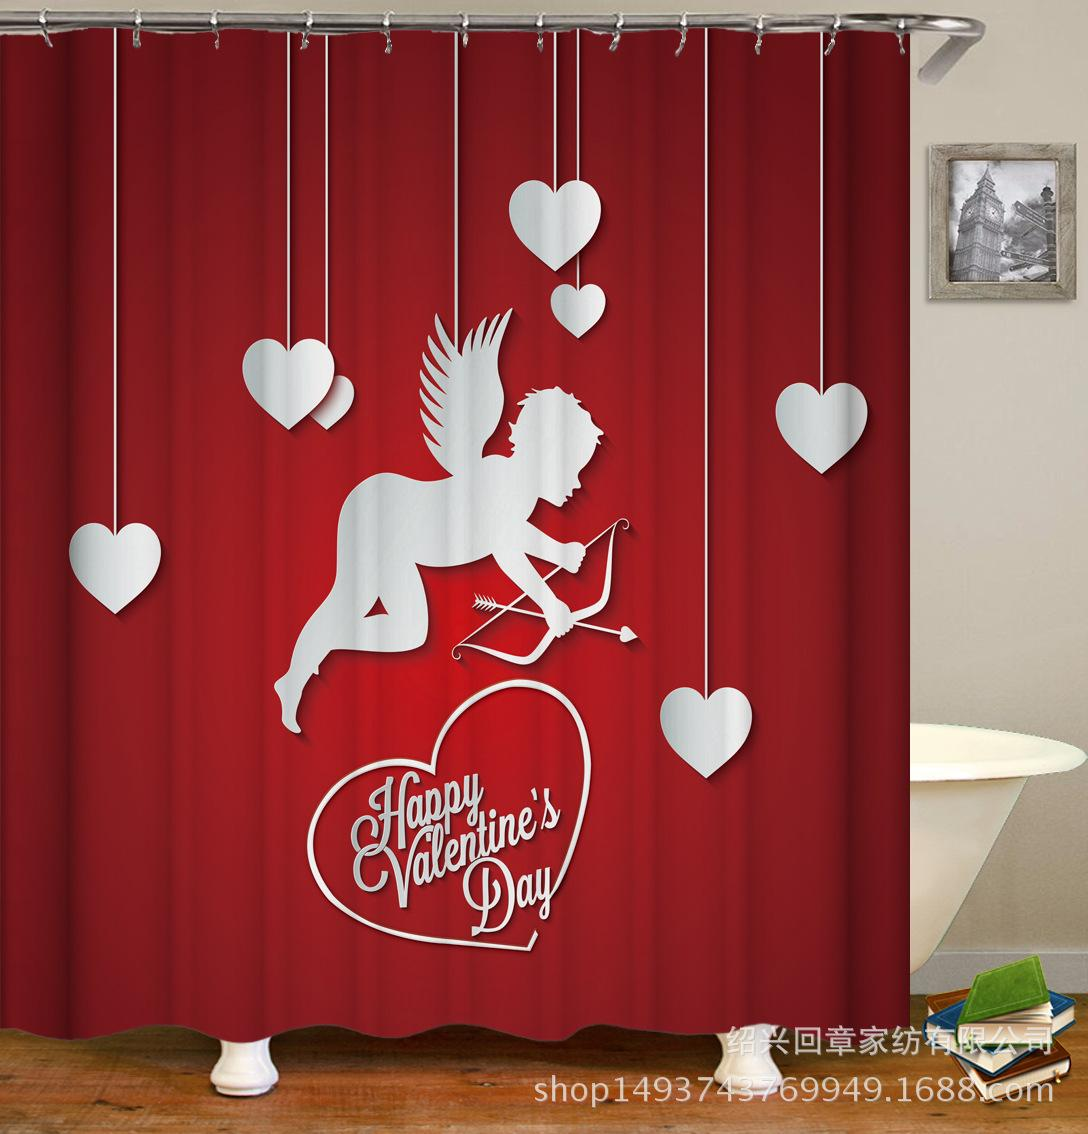 2019 Memory Home Happy Valentines Day Shower Curtain Waterproof Polyester Fabric Bathroom Red Mug I Love You Bath Decor Curtains From China Wholesale20